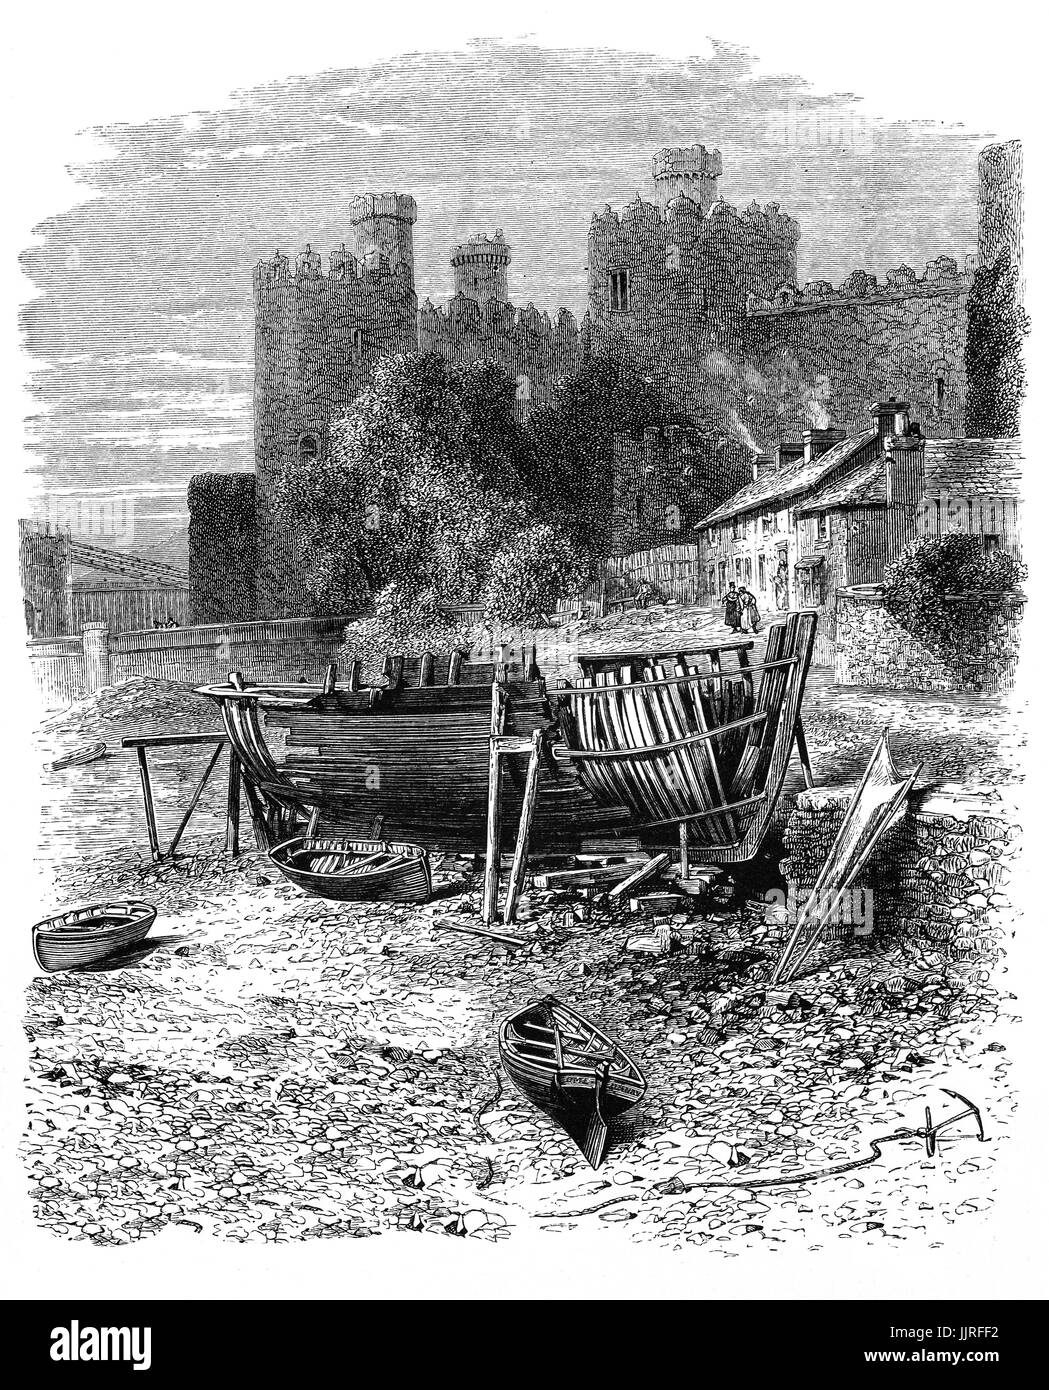 1870: Conway or Conwy Castle  is a medieval fortification in Conwy, on the north coast of Wales. It was built by - Stock Image